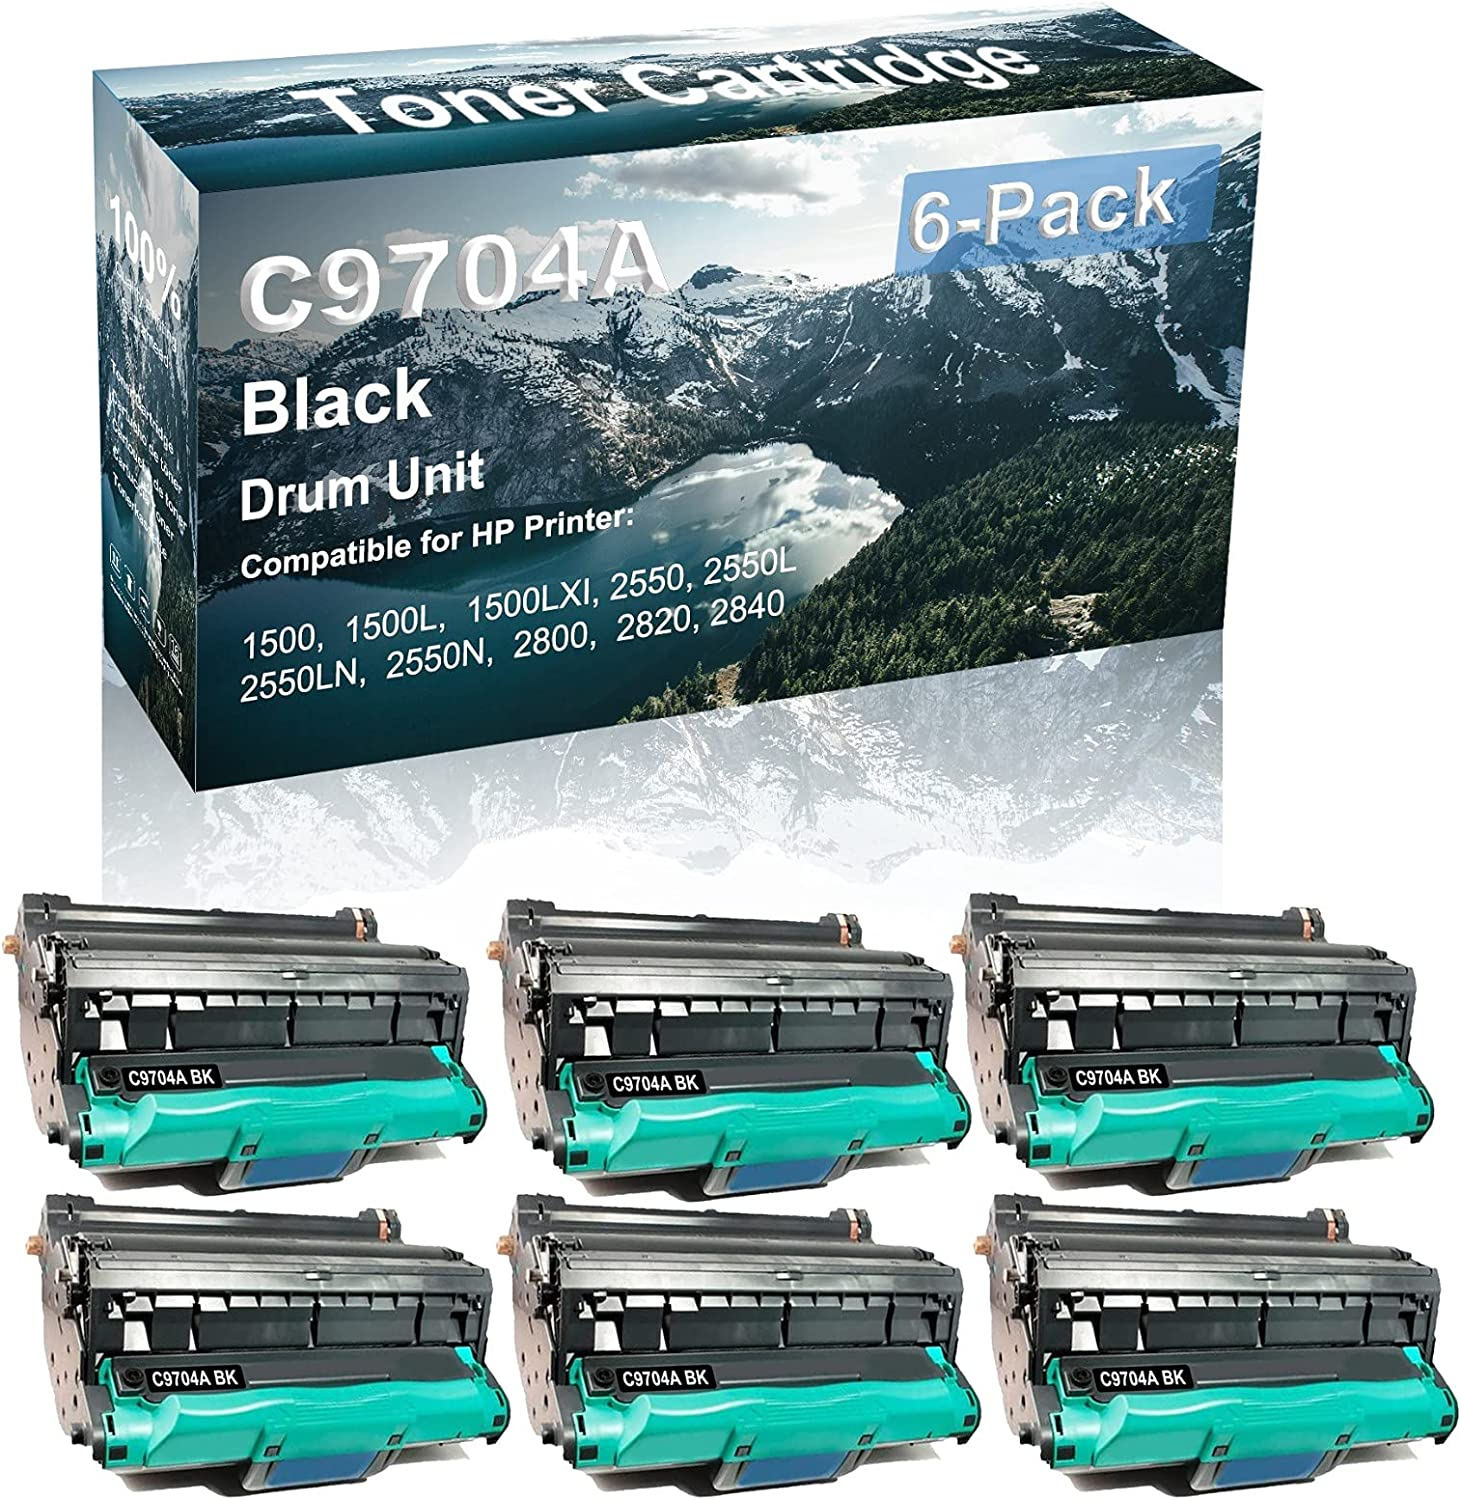 6-Pack Compatible C9704A Drum Kit use for HP 1500 1500L 1500LXI Printer (Black)